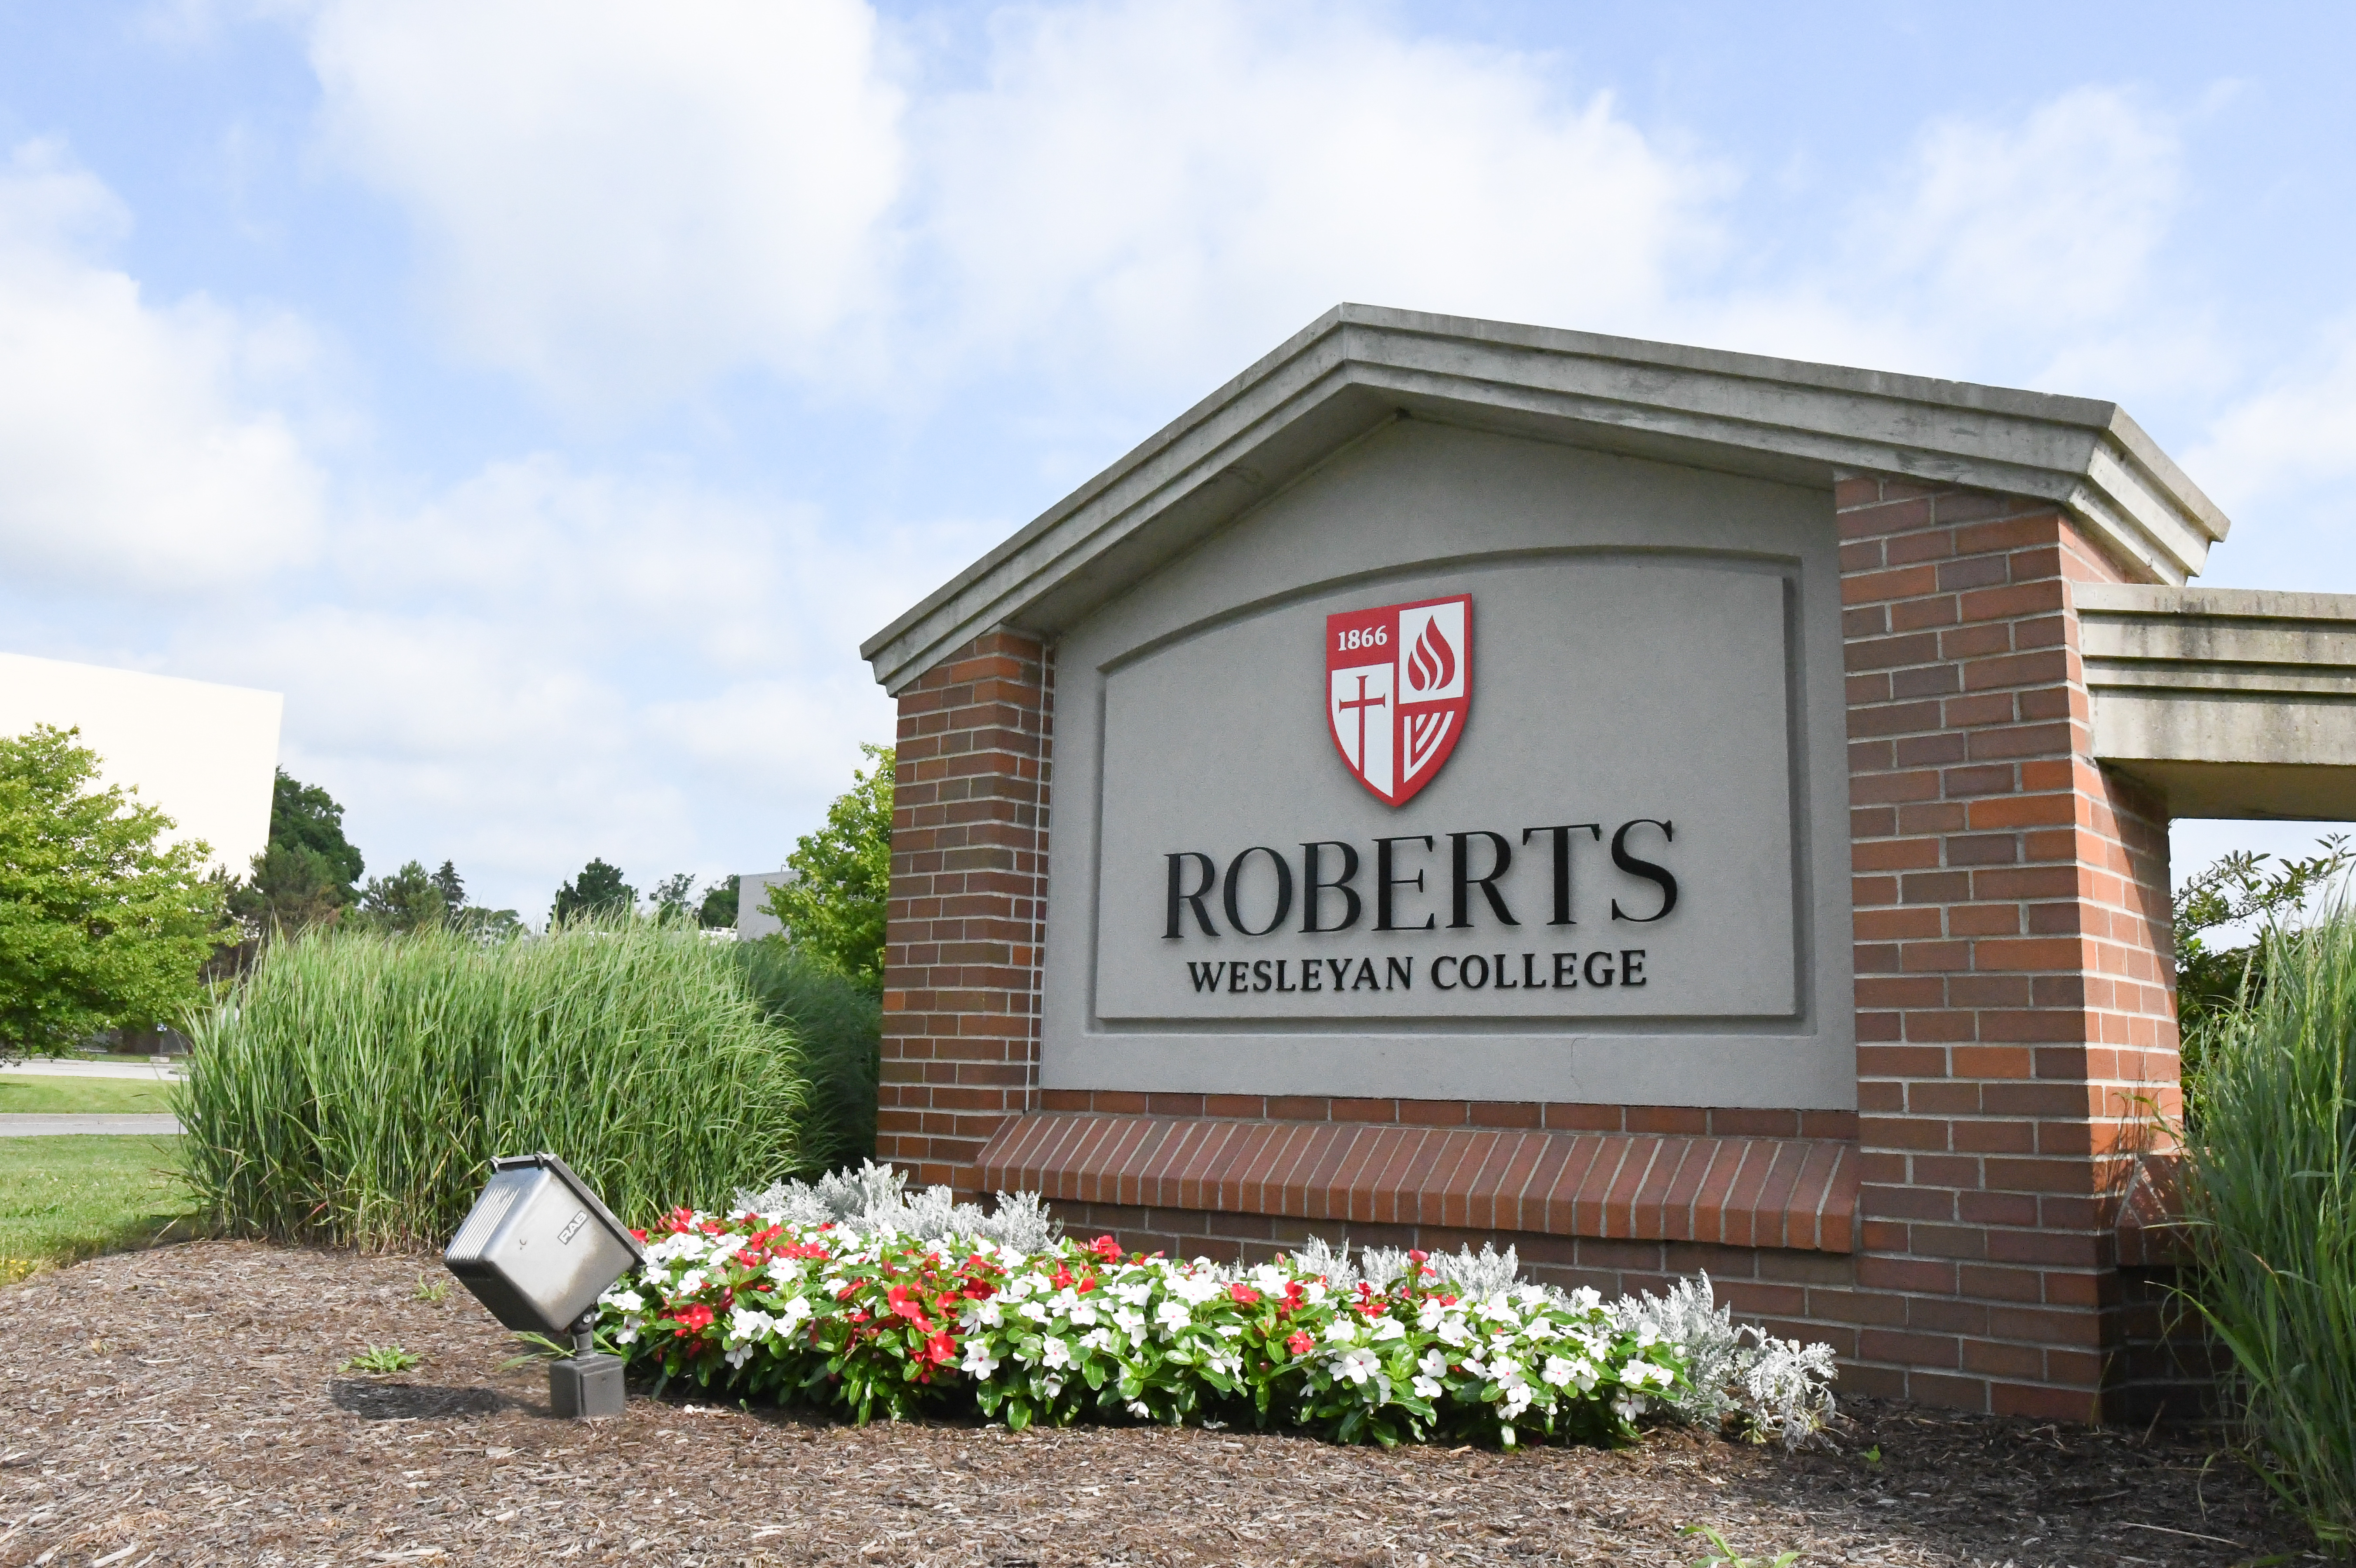 Roberts front sign